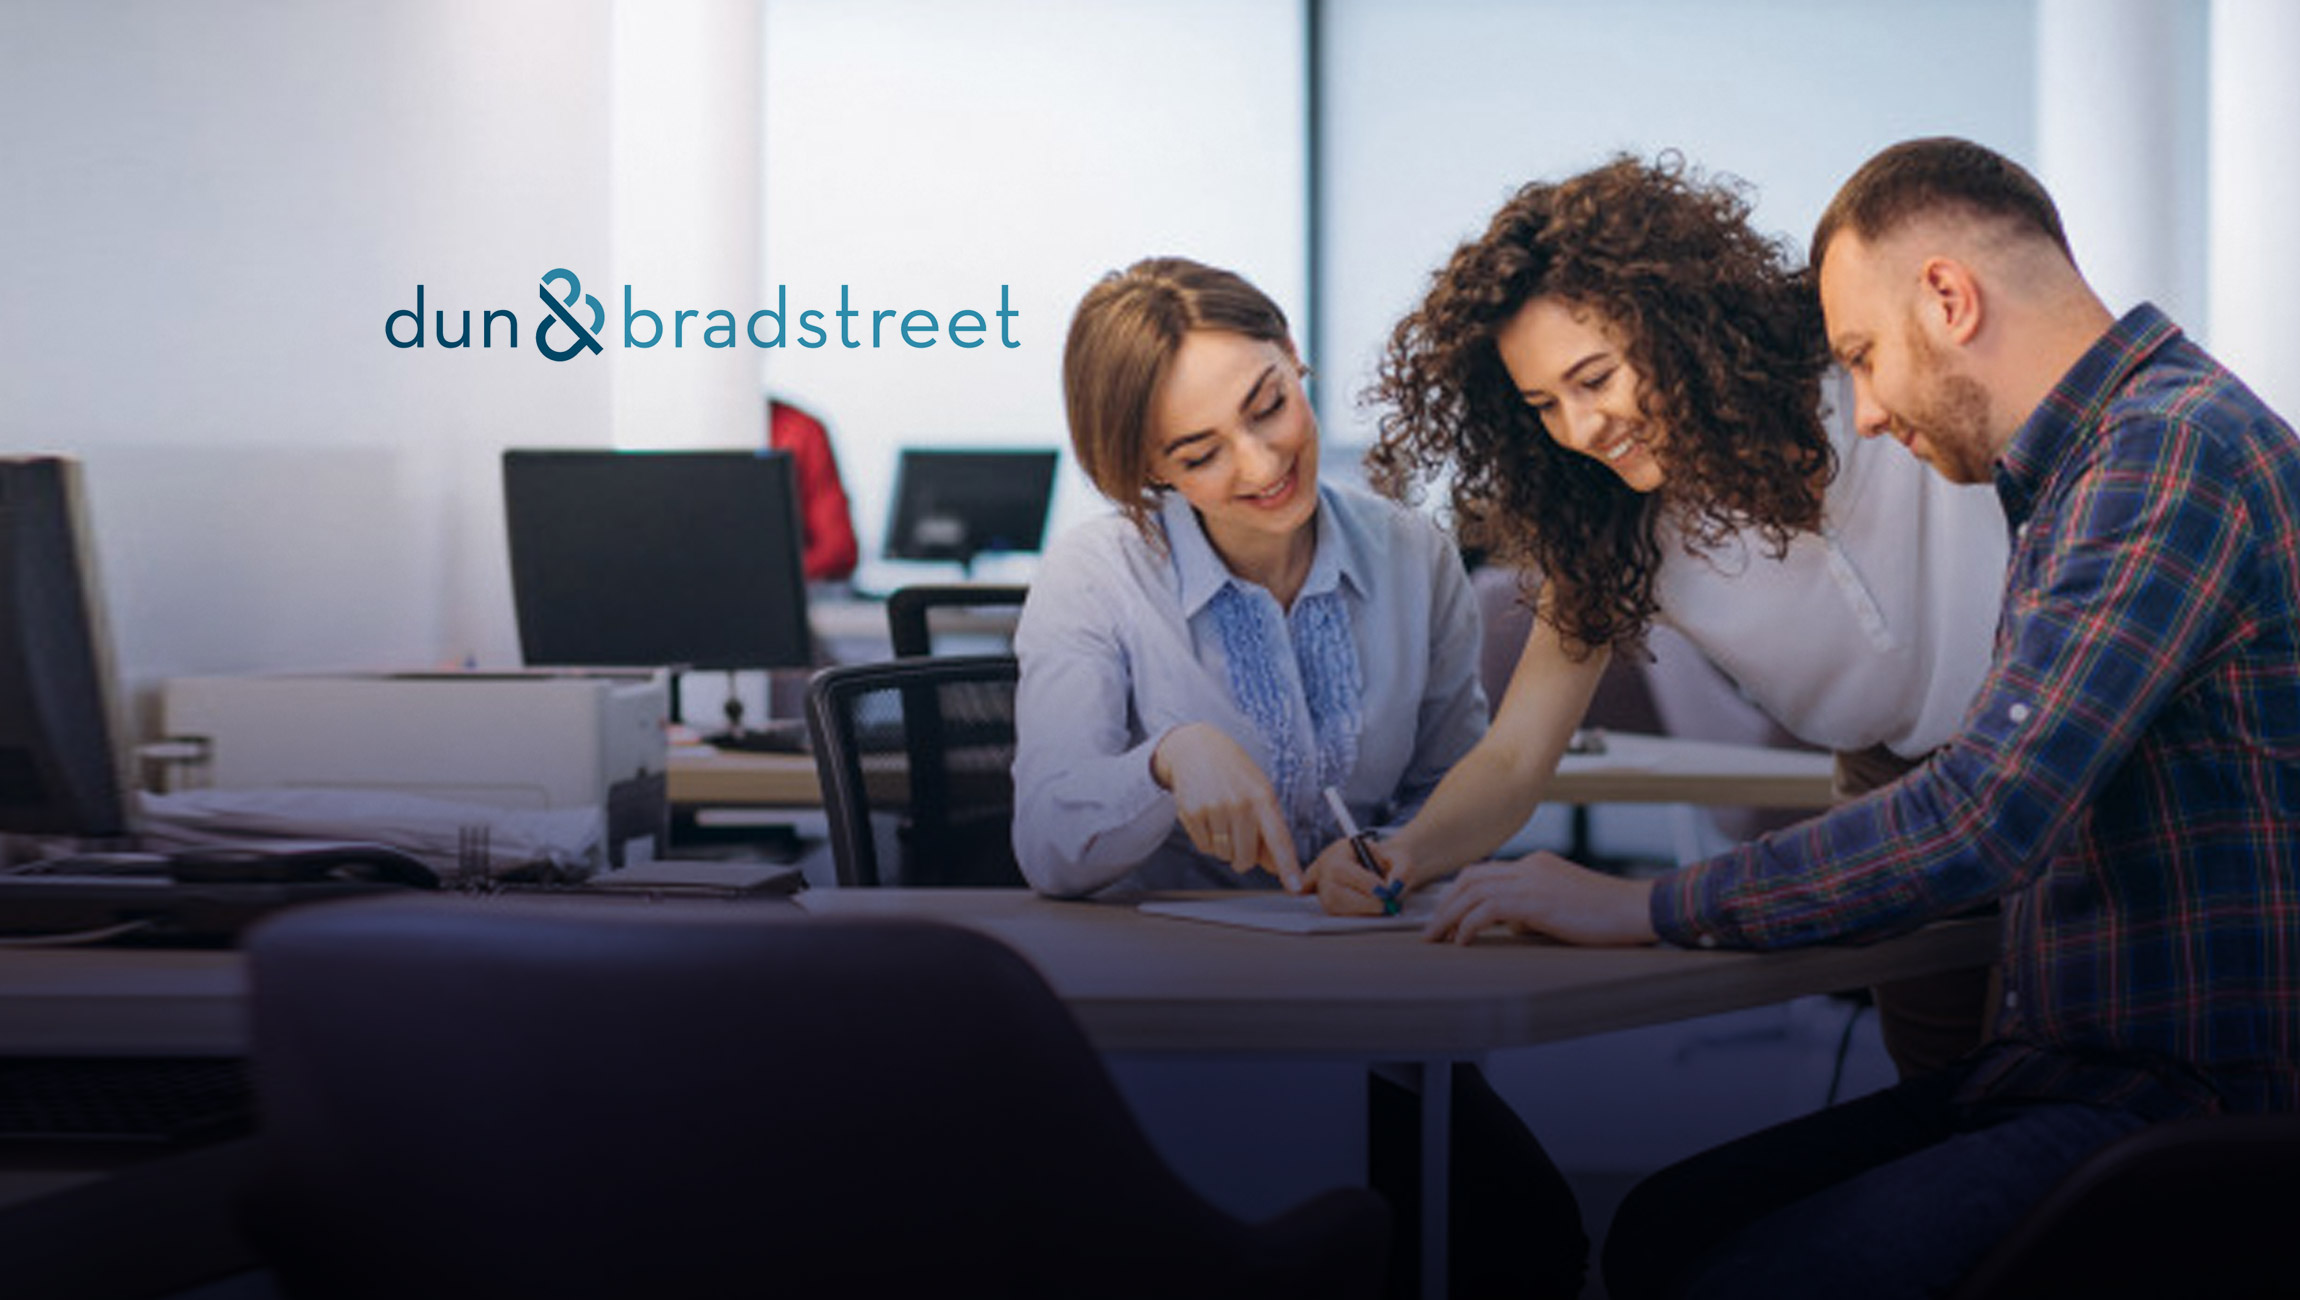 Dun & Bradstreet Launches Buyer Intent to Increases ROI for B2B Marketing and Sales Teams